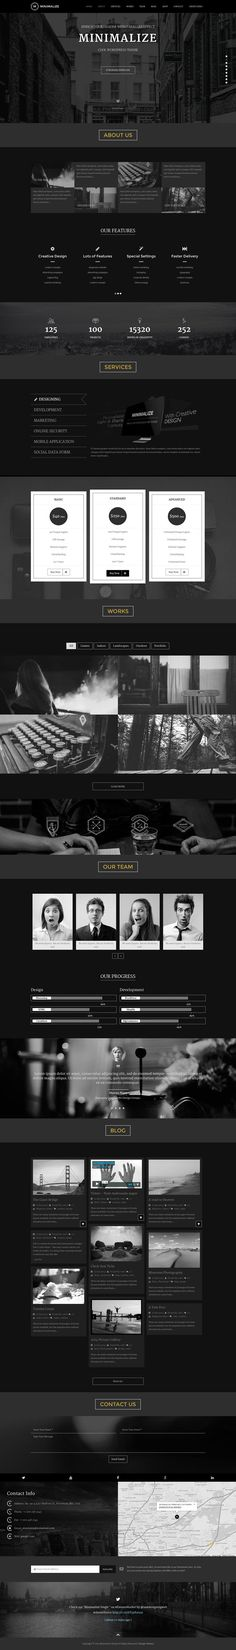 #Minimalize is a Fully responsive, flexible, and #minimal one-page portfolio WordPress #Theme. Comes with dark and light skins.. Use it to showcase your brand into a single page, to create product promotion page, landing page etc...